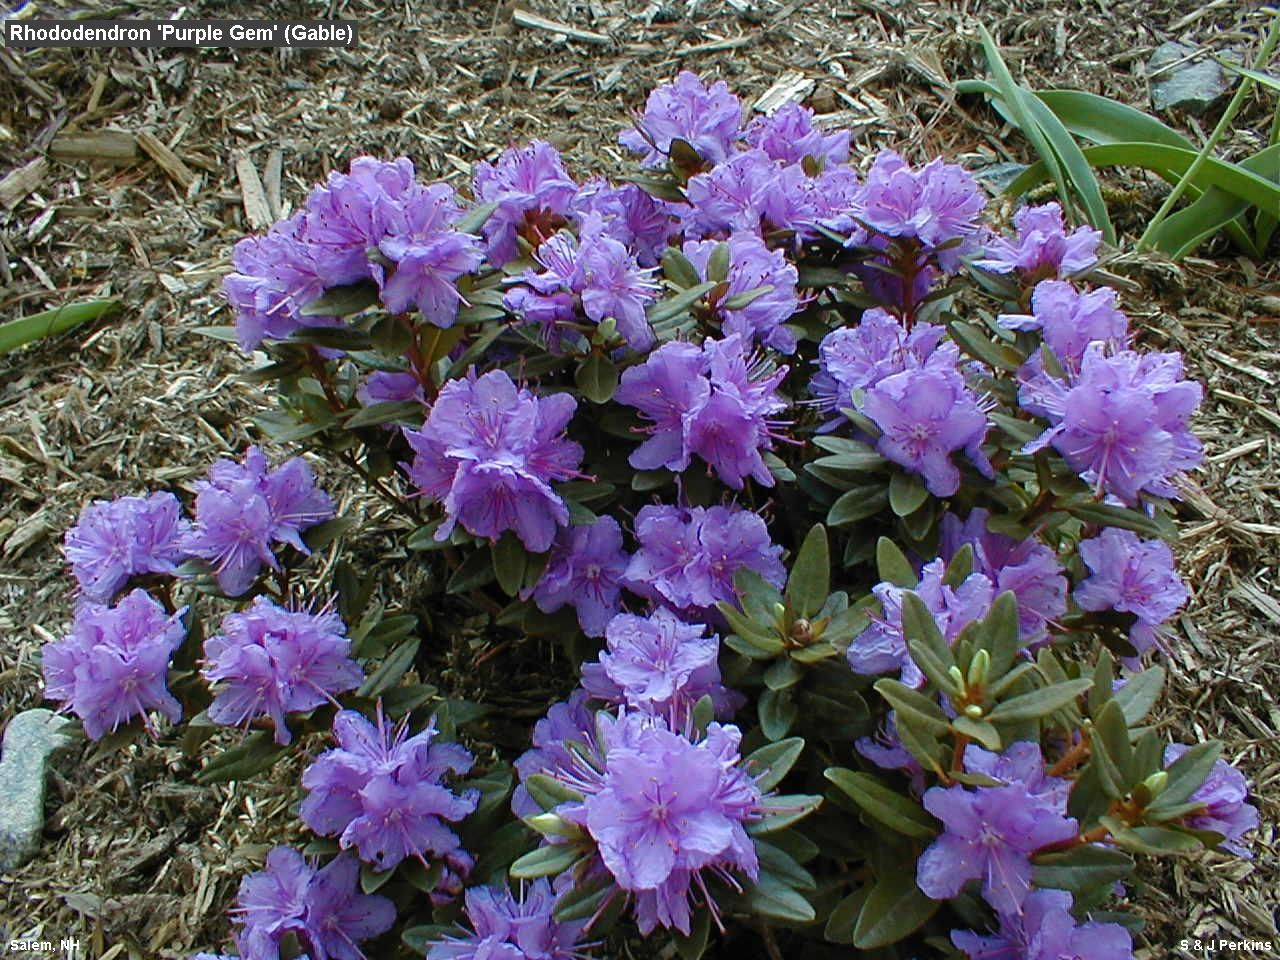 Pin By Pauline Alexandris Wolstencrof On Outdoor Garden And Decor Plants Blue And Purple Flowers Rhododendron